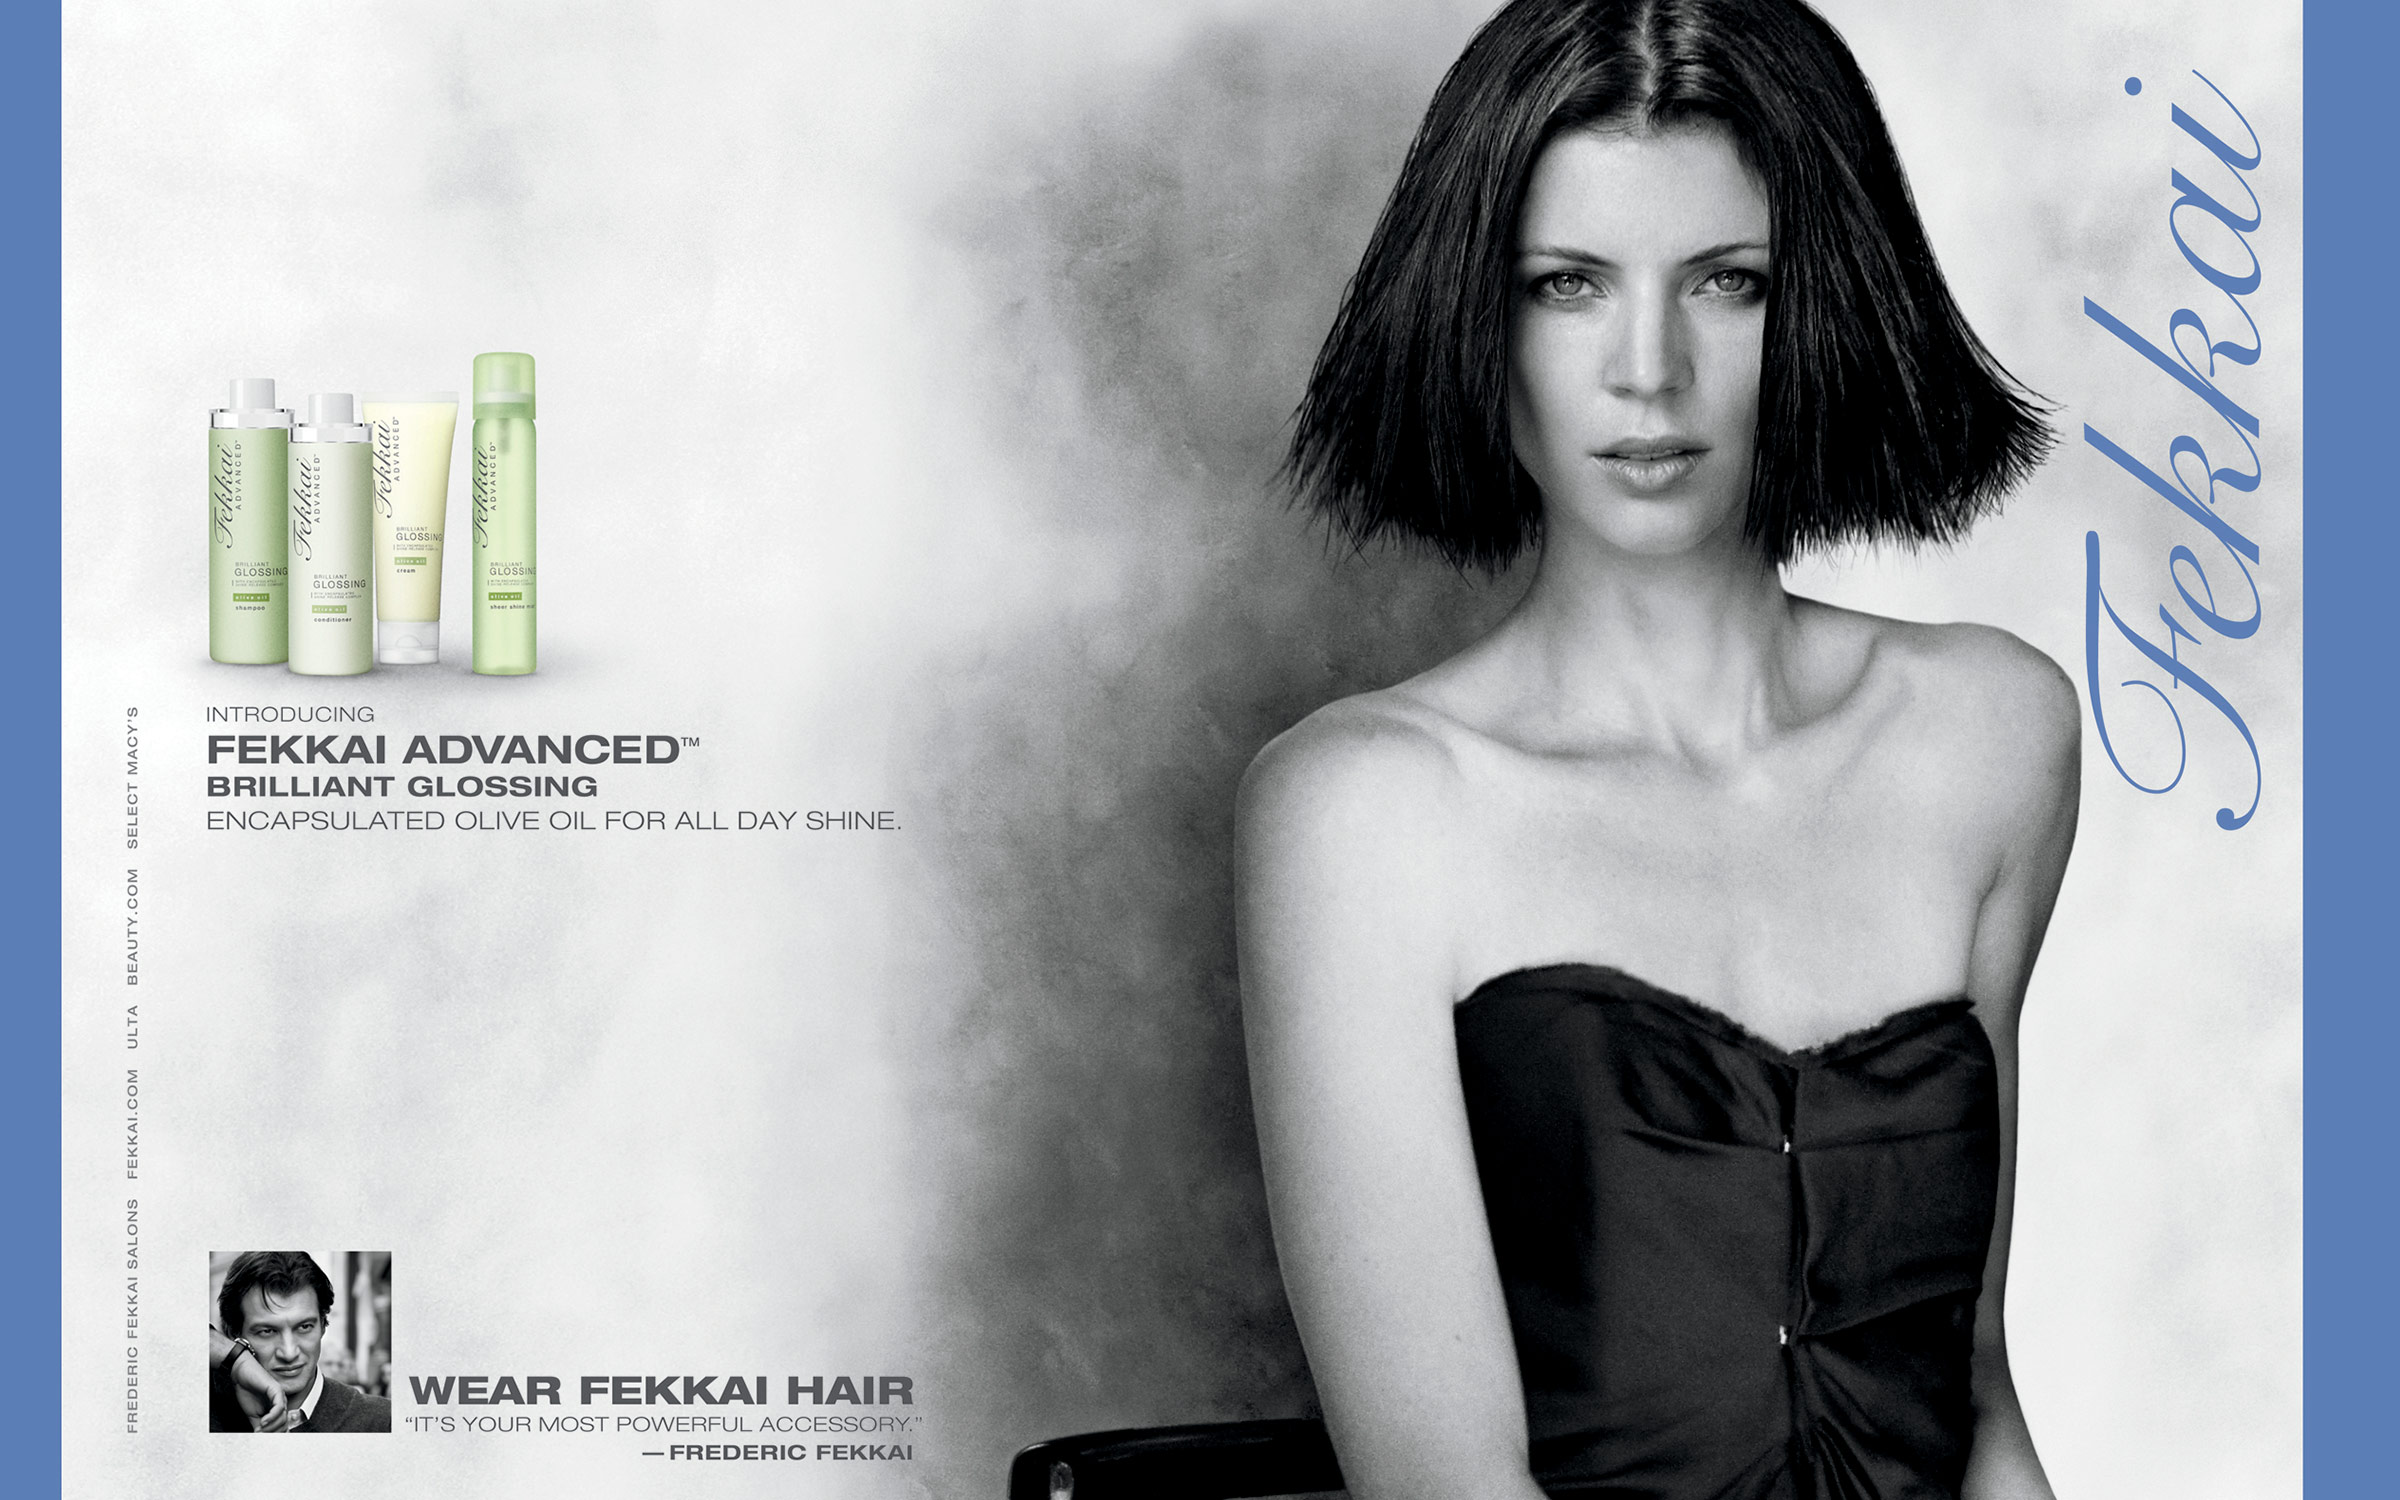 Still life photography for an advertising campaign, photographed for luxury hair care brand Frederic Fekkai